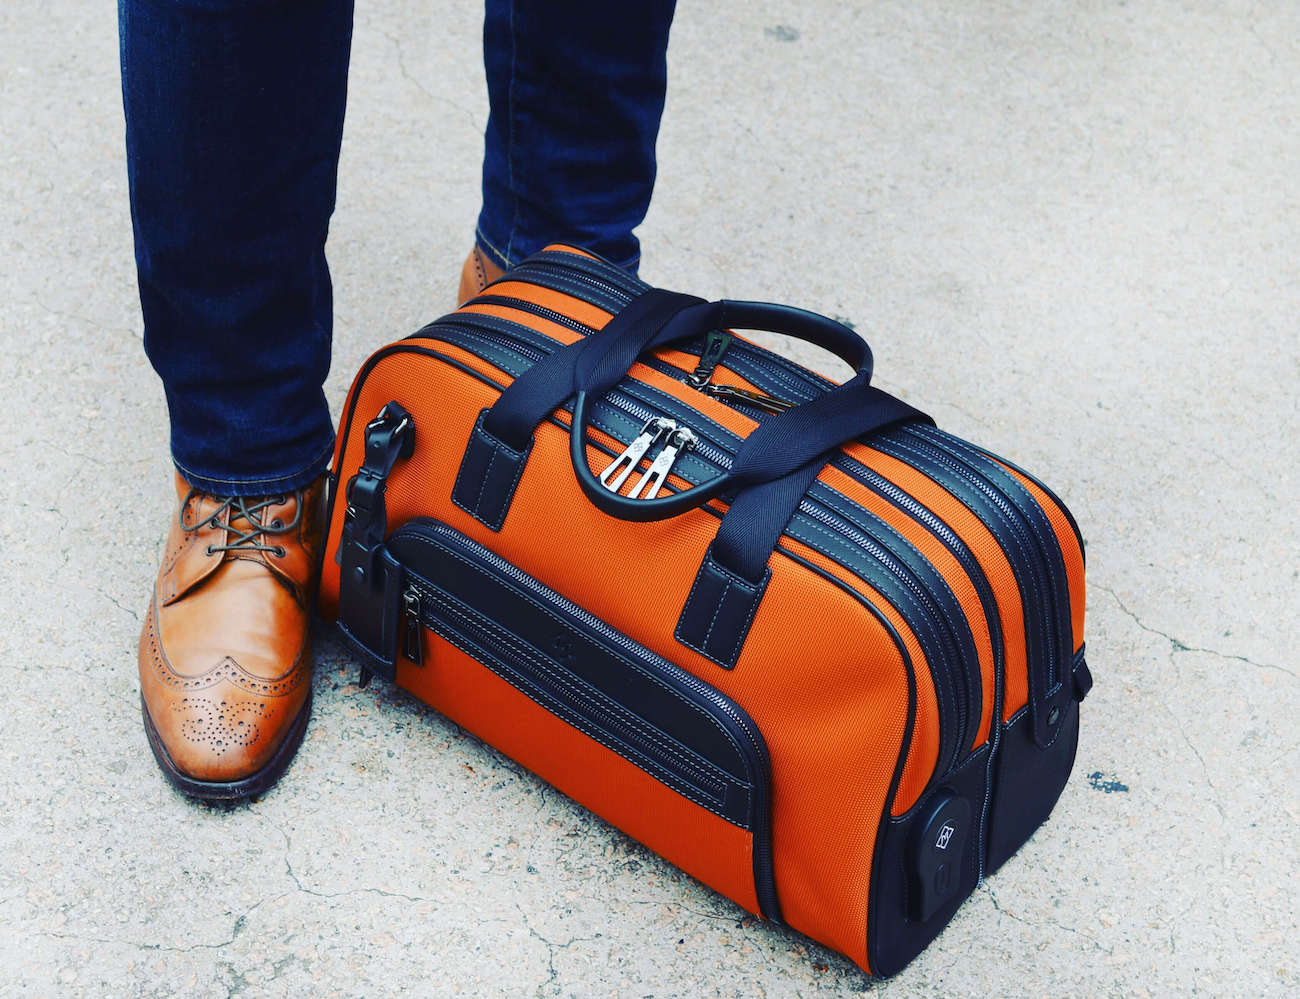 ATLAS Time-Saving Travel Bag will help you fly through airport security